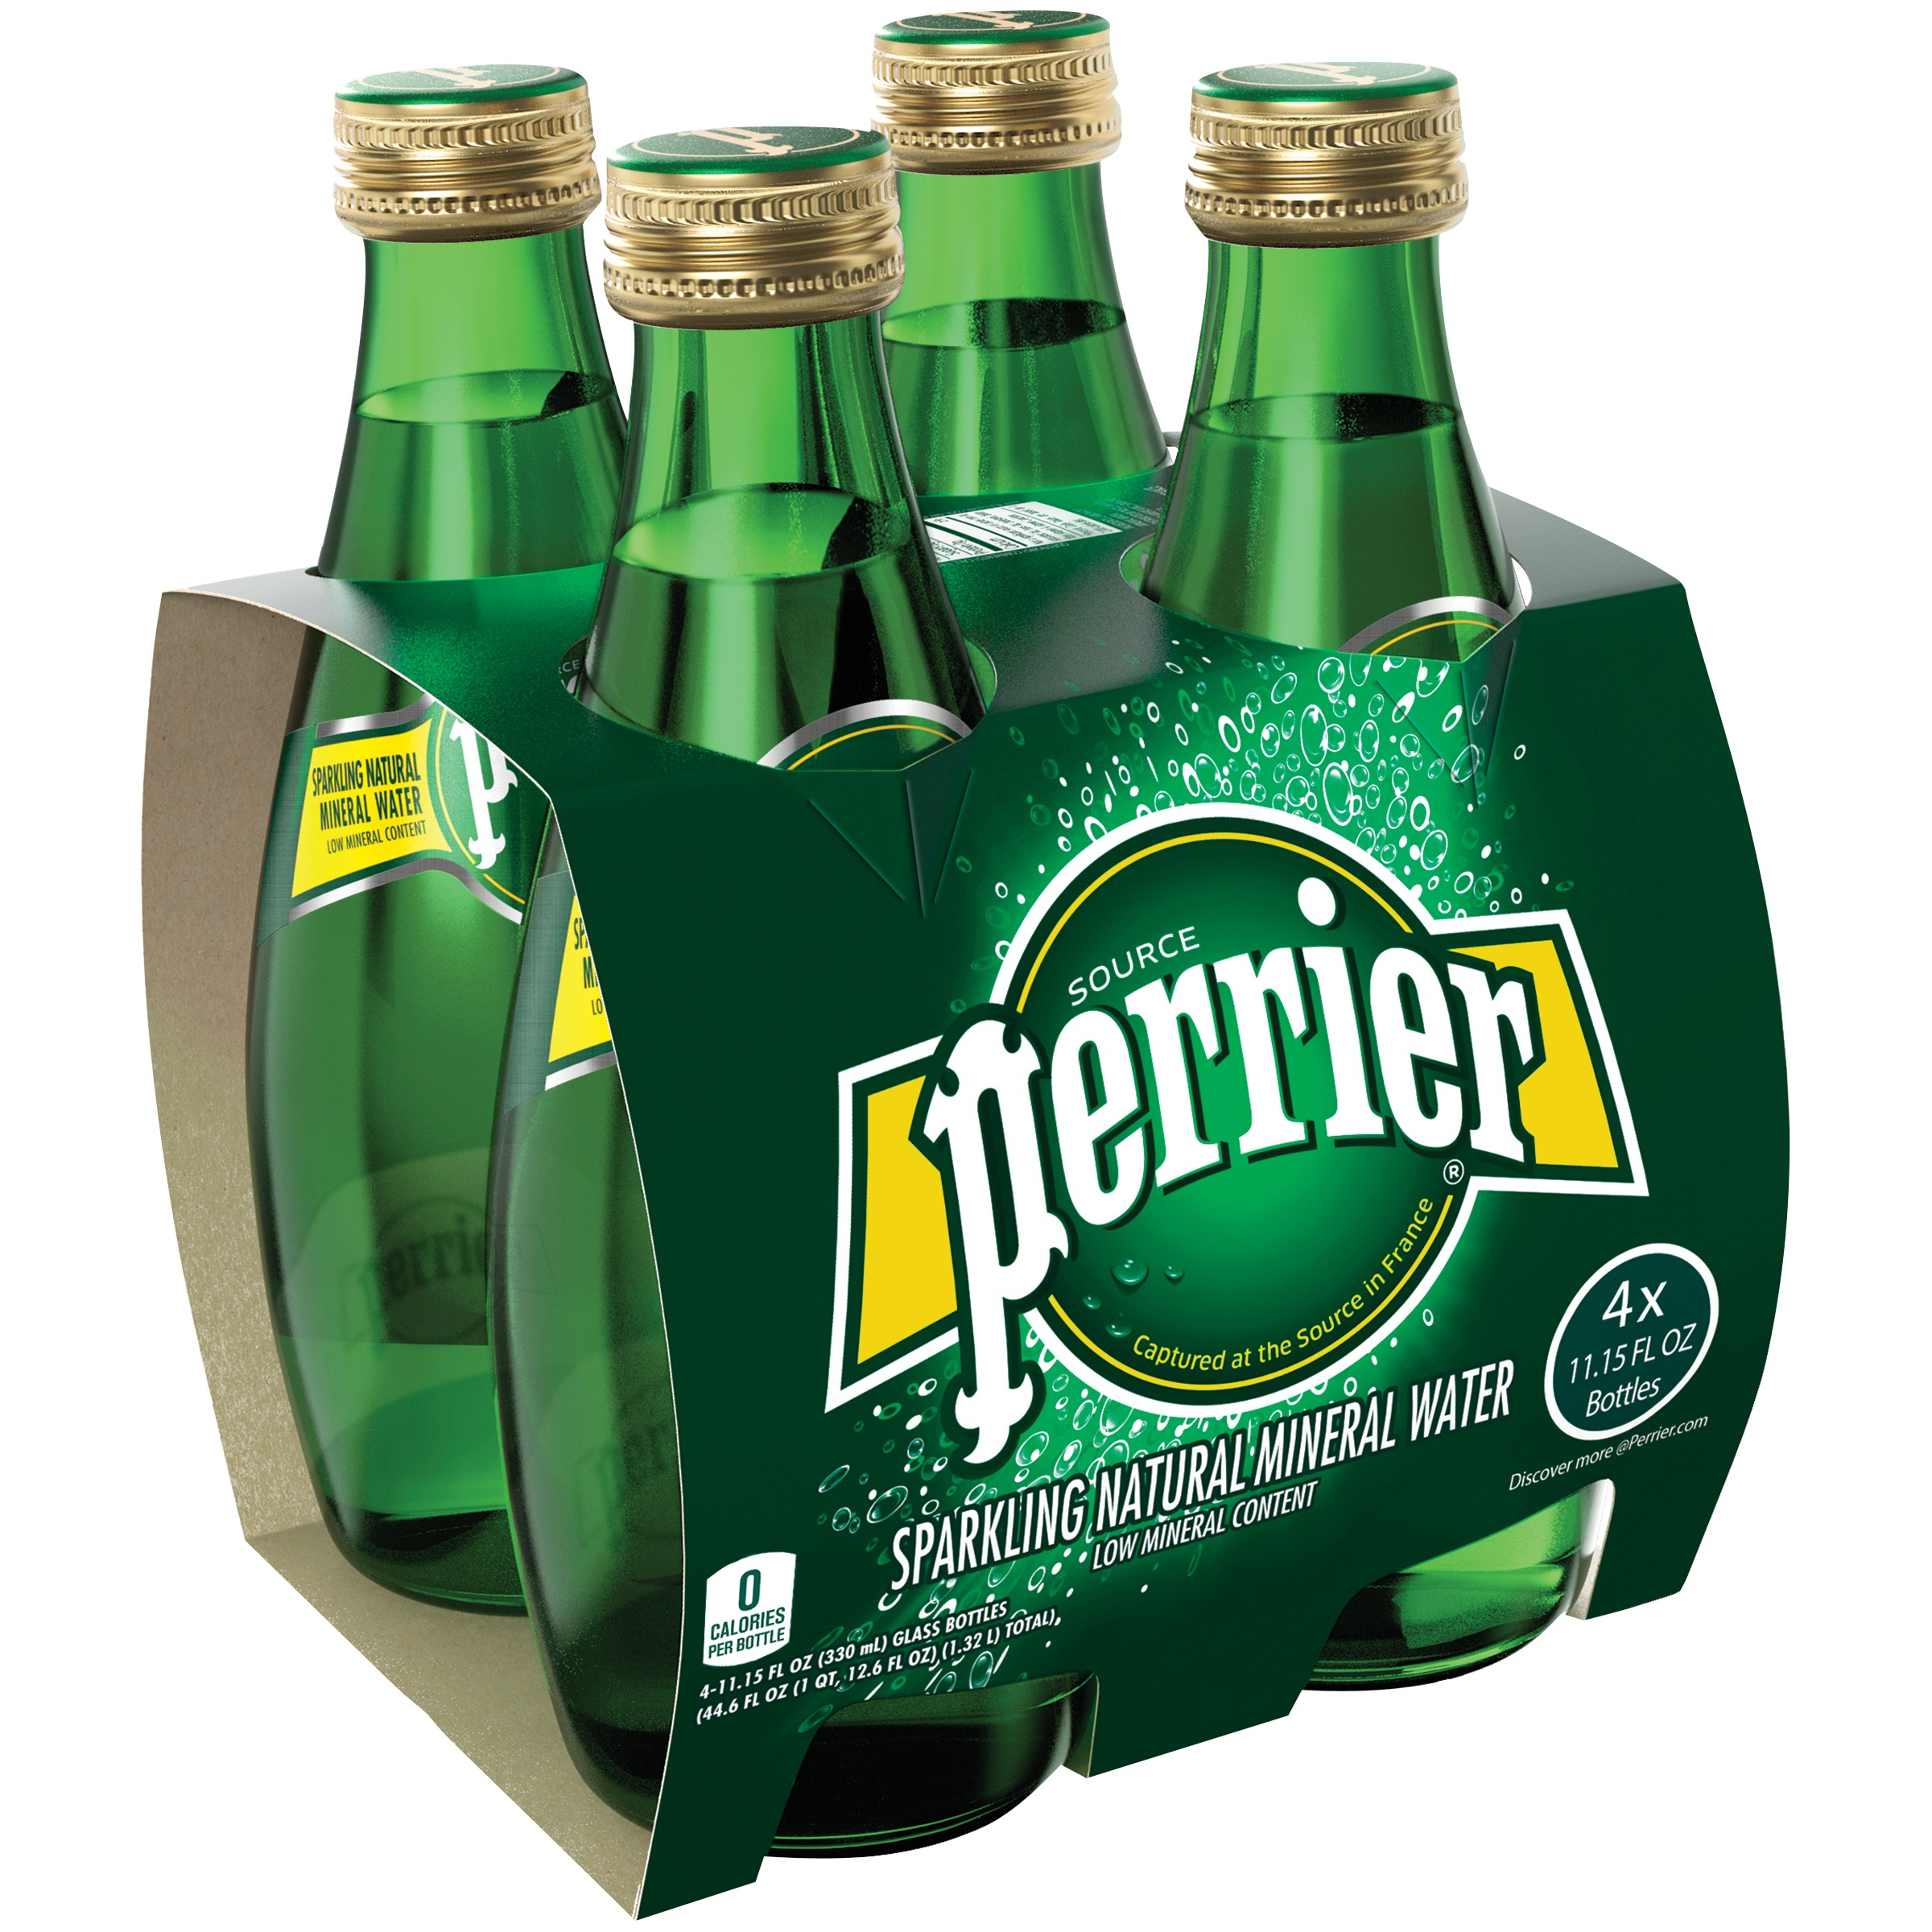 PERRIER Sparkling Natural Mineral Water, 11.15-ounce glass bottles